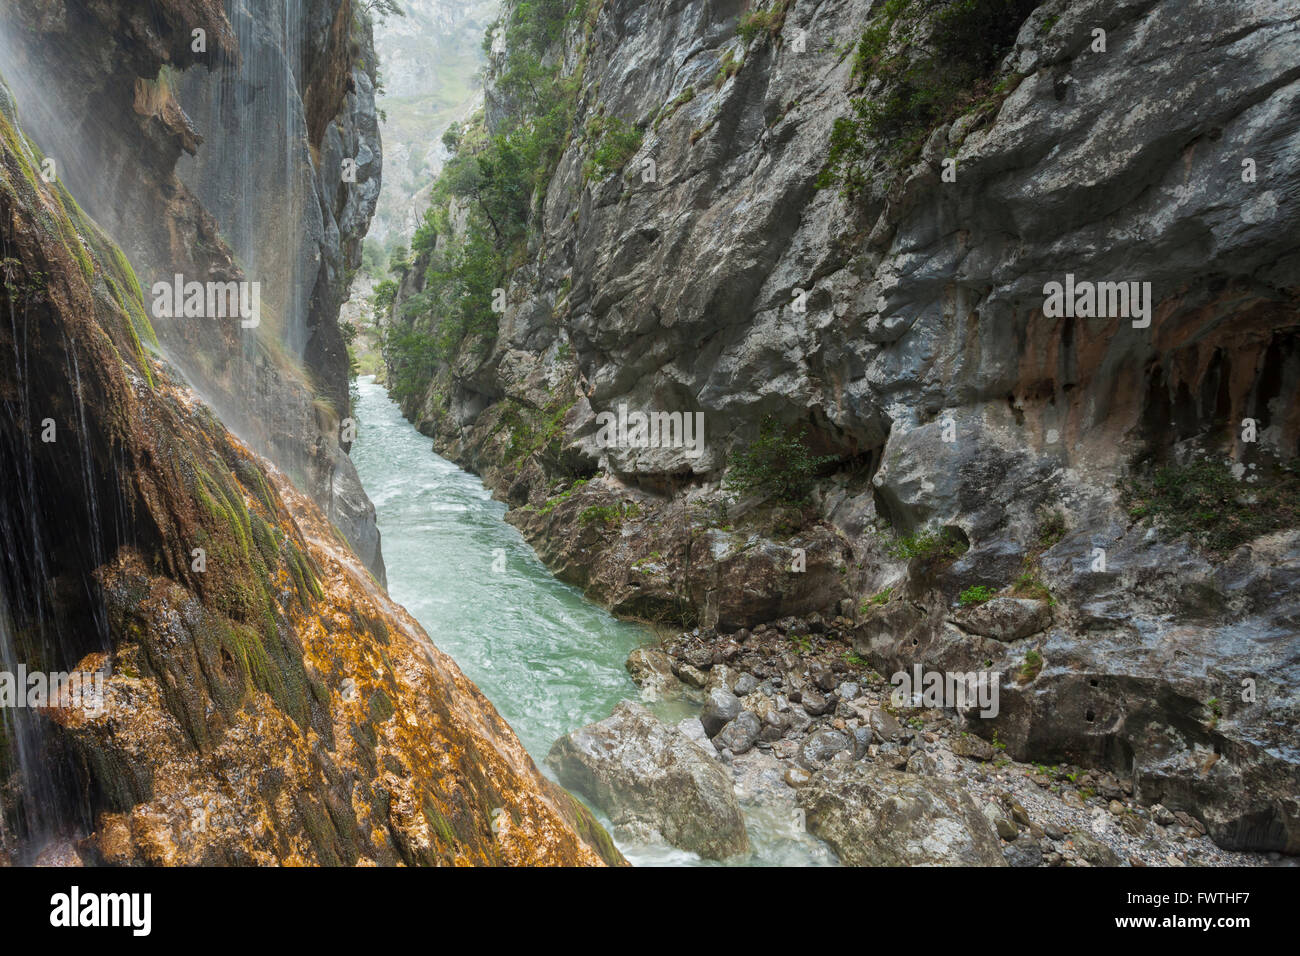 The gorge of river Cares near Cain, Leon, Spain. - Stock Image